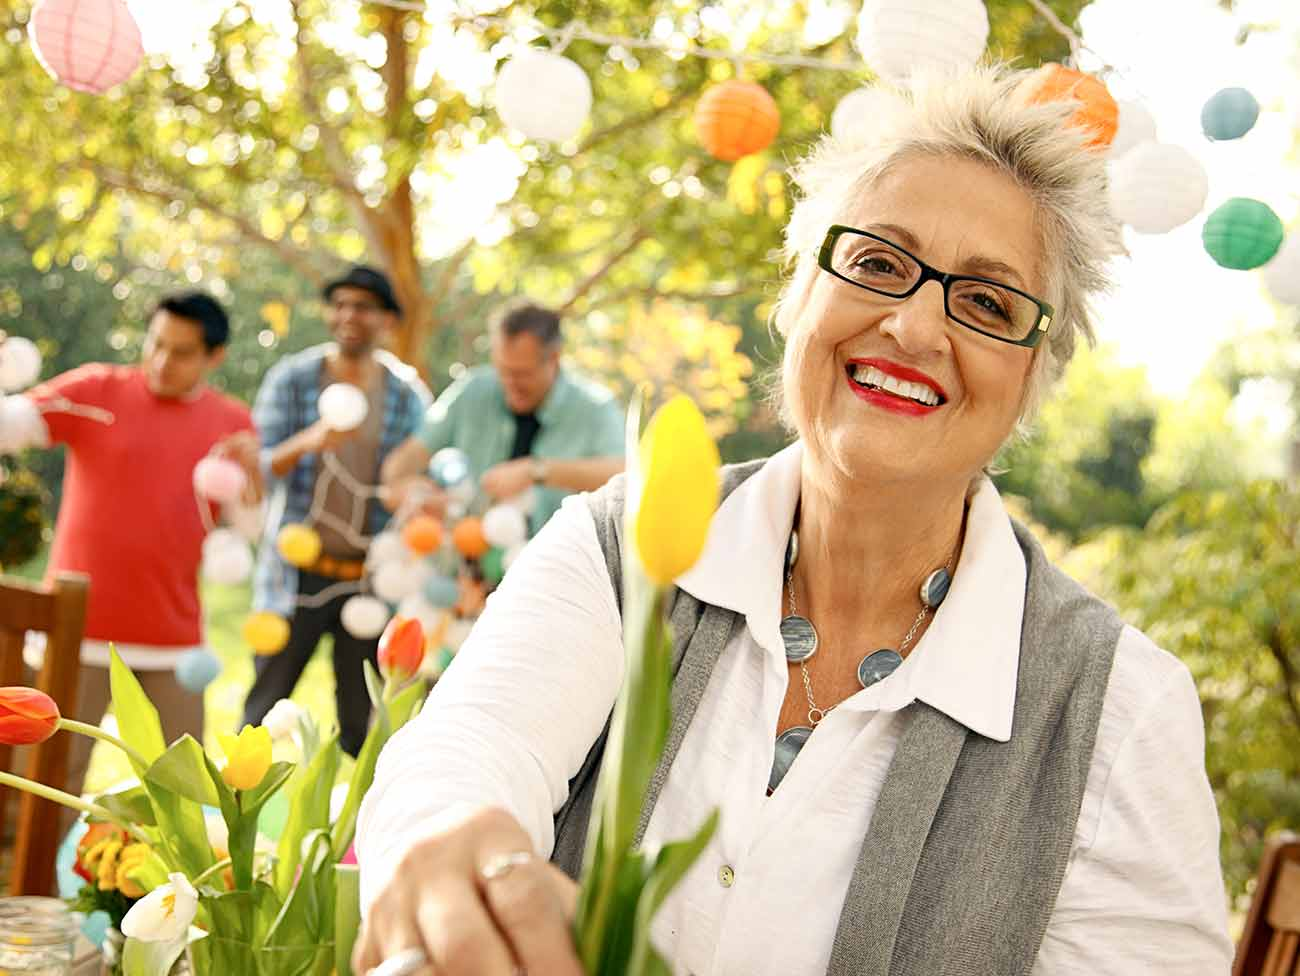 older woman outside in a party setting holding a yellow tulip flower